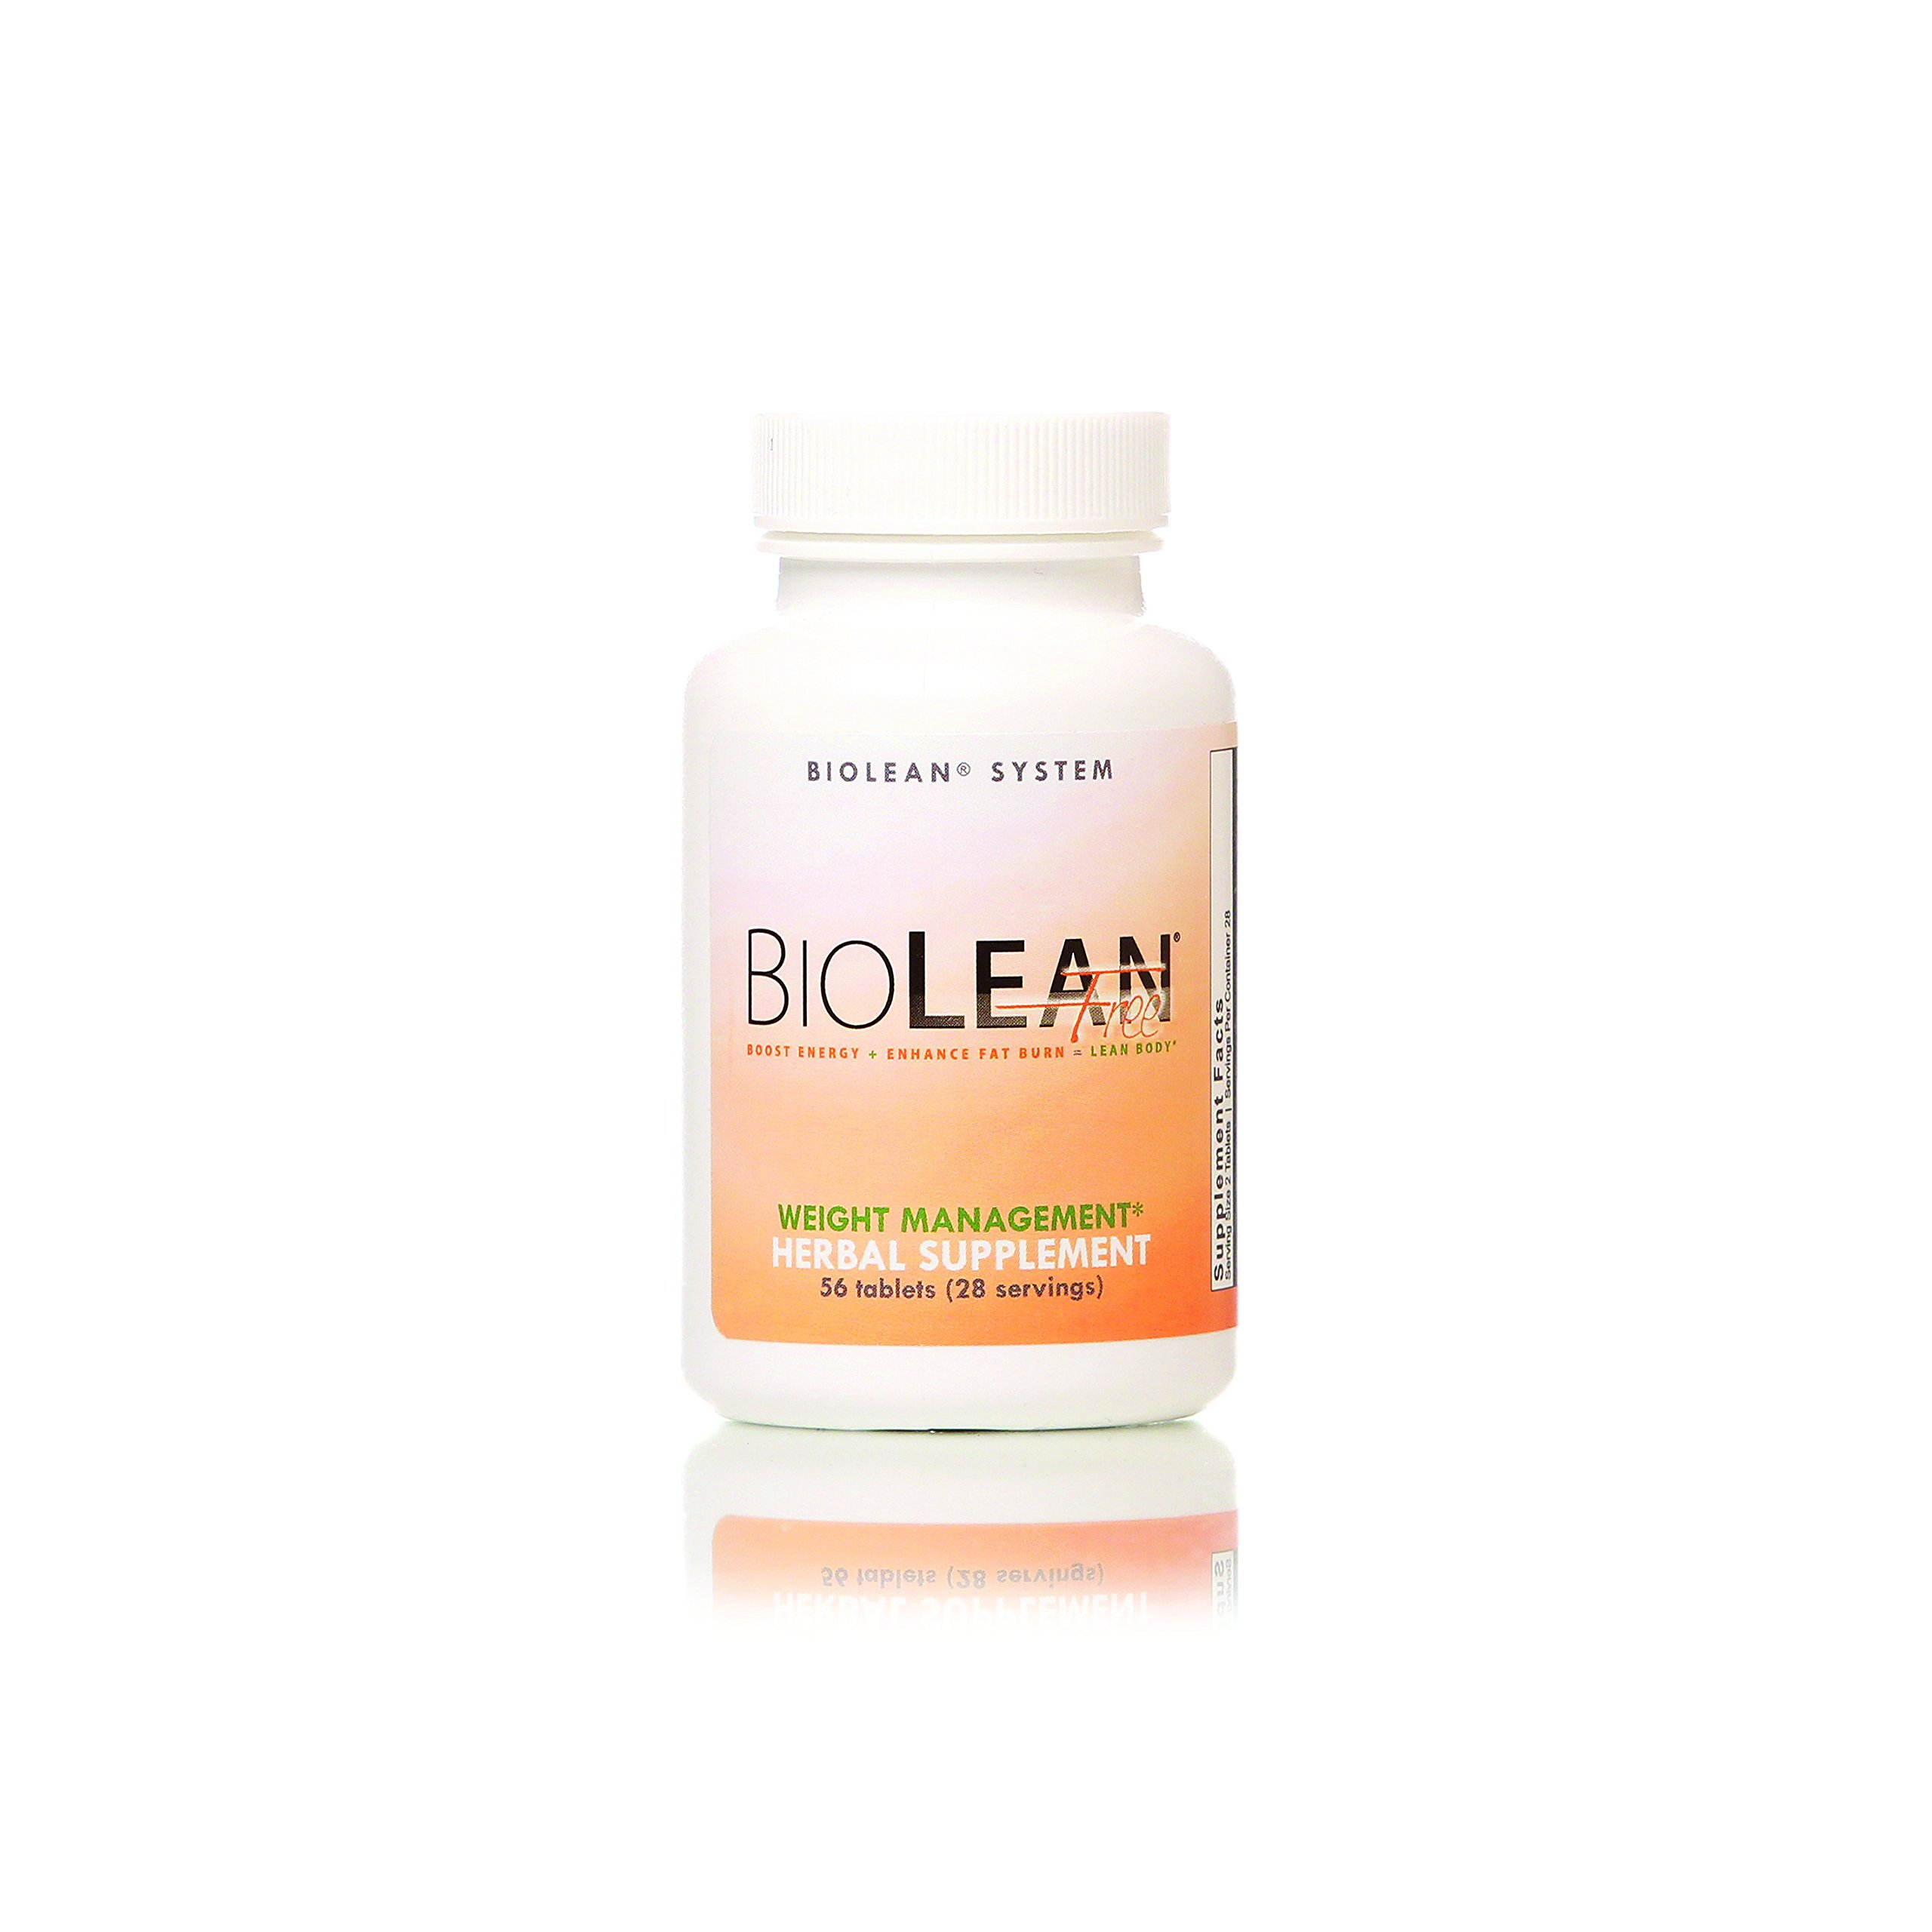 BioLean Free Natural Weight Management Supplement (56 Count/28 Servings)